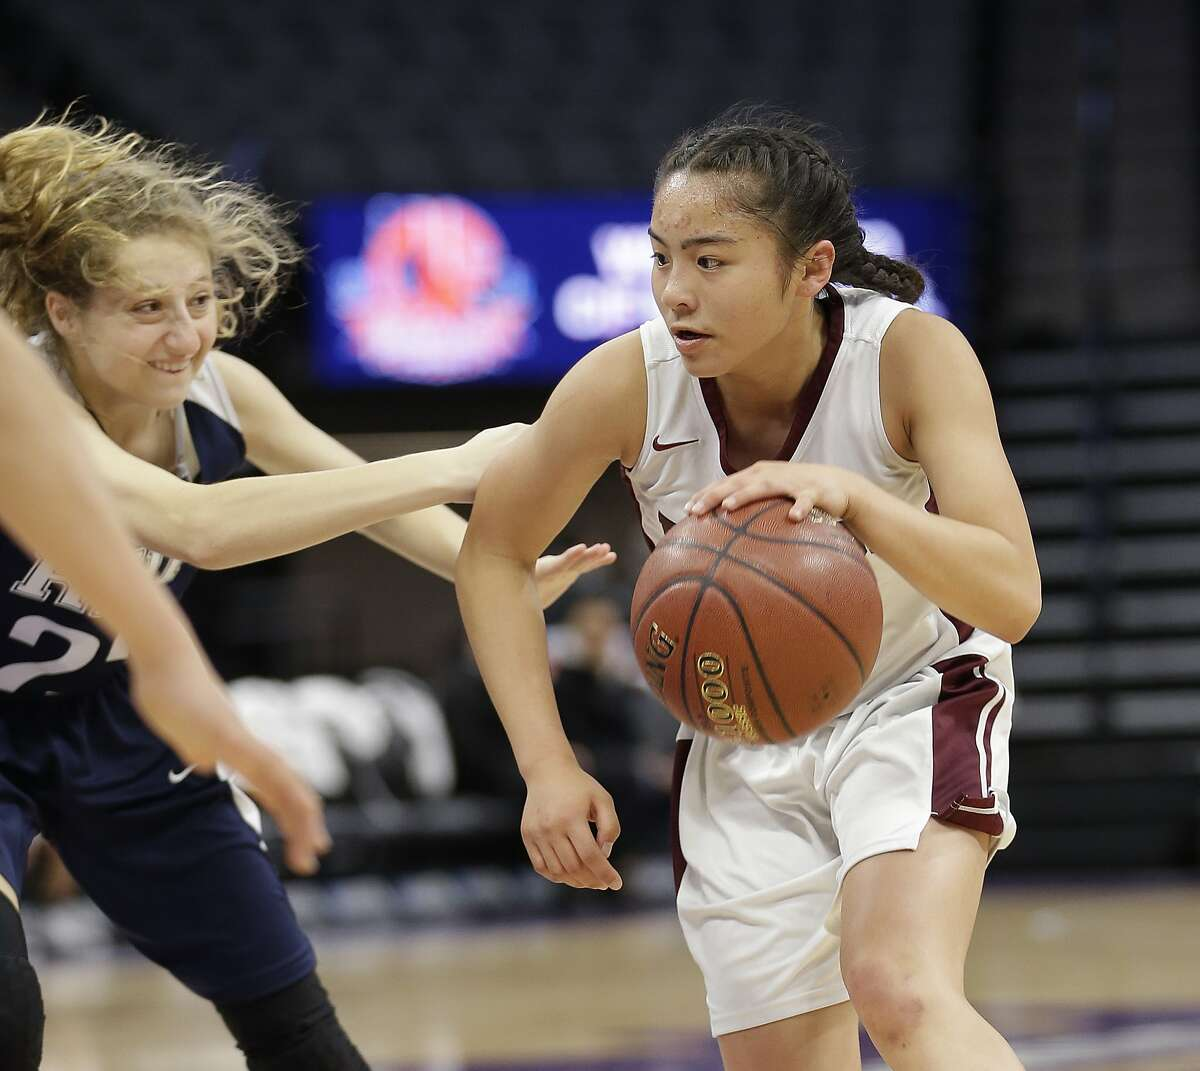 Eastside College Prep's Zion Gabriel, right, drives against Rolling Hills Prep's Natalie Valvo during first half of the girls CIF Division V high school basketball championship game, Friday, March 24, 2017, in Sacramento, Calif. Eastside College Prep won 63-40. (AP Photo/Rich Pedroncelli)